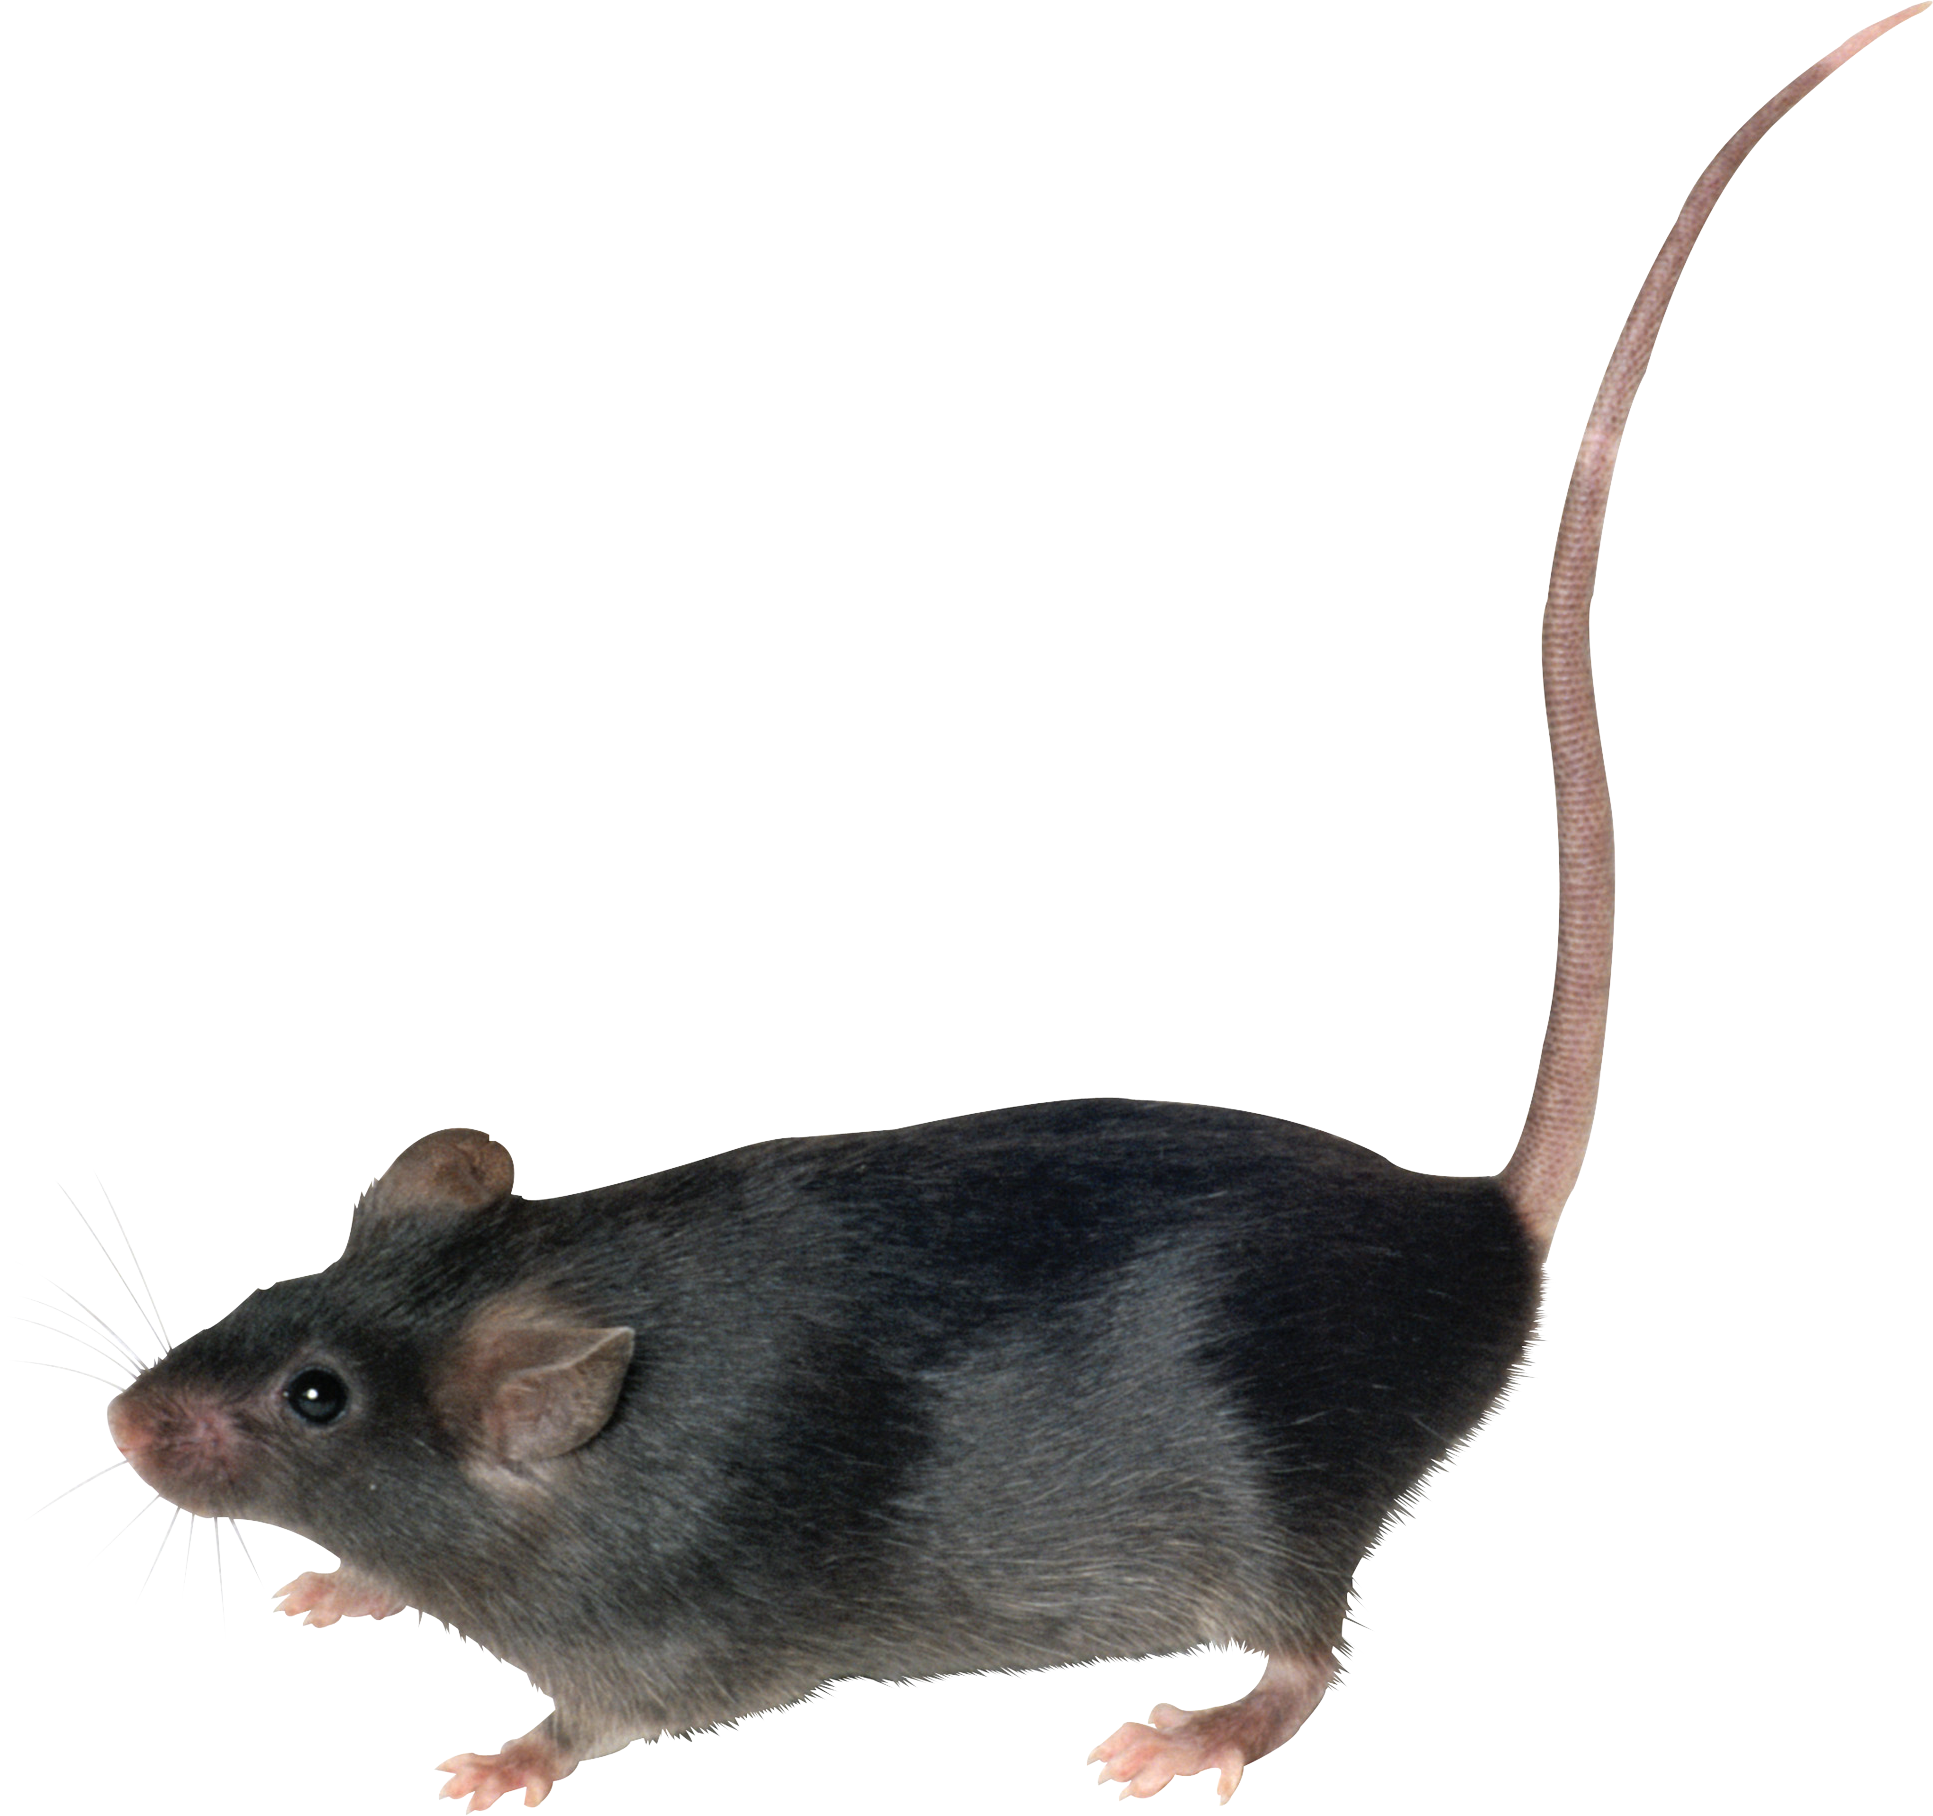 Rat png images. Mouse high quality web